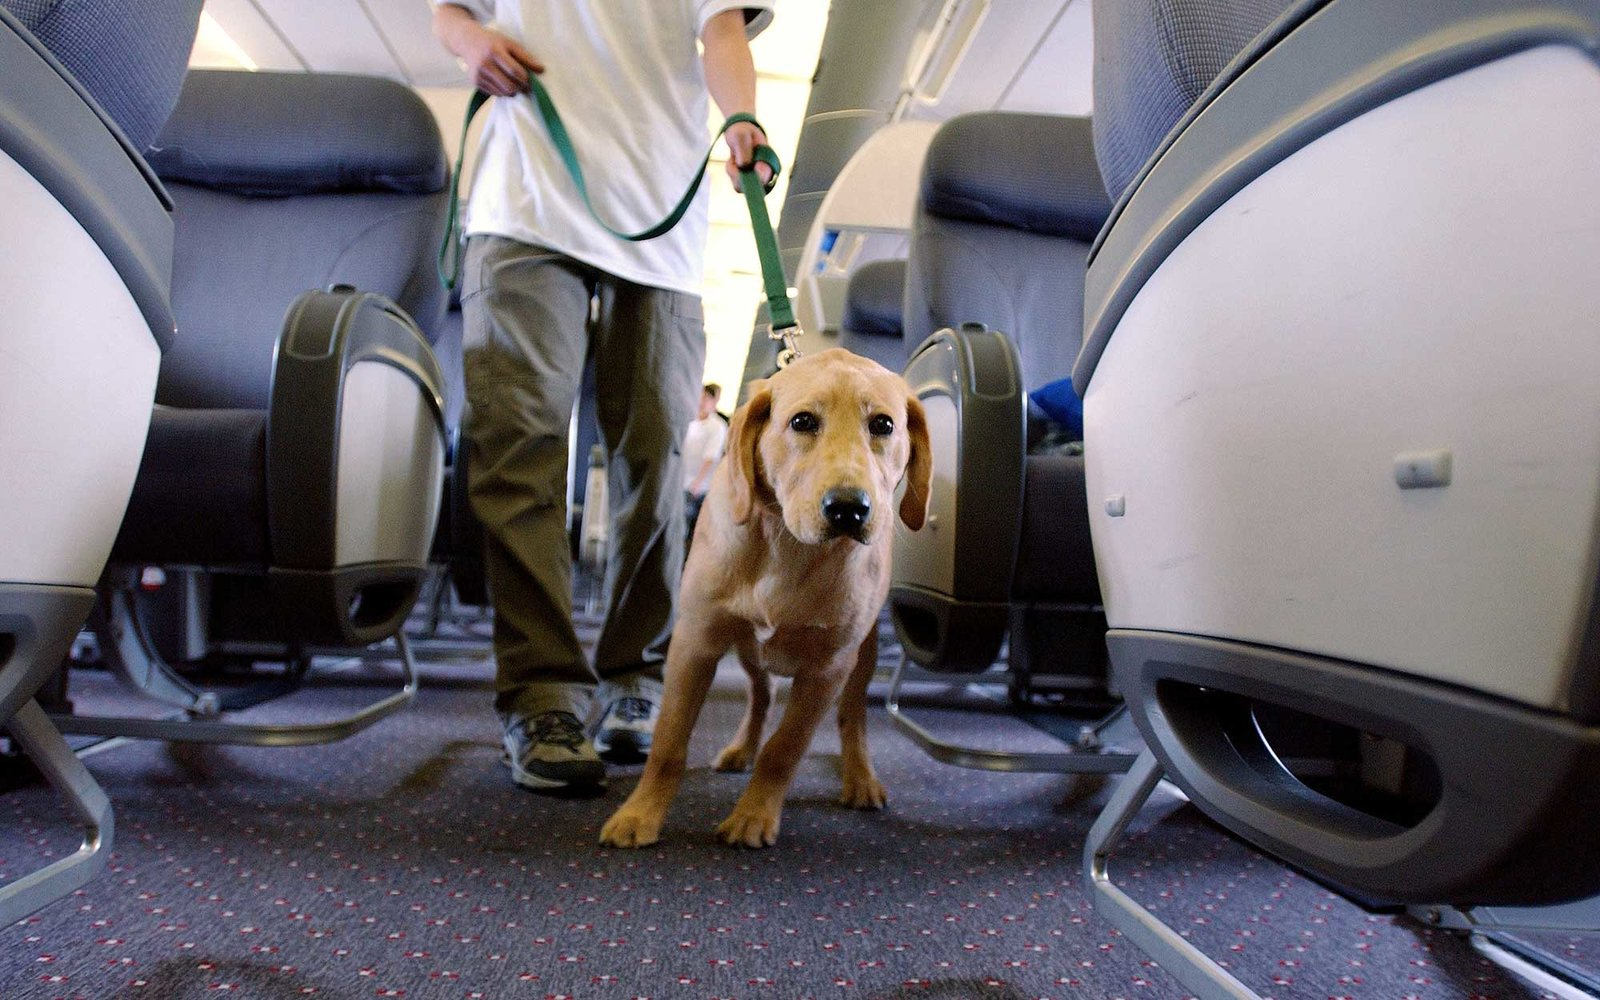 NEW YORK - MARCH 27: Student guide dog Max, a Golden Retreiver puppy, pulls his handler down the aisle of a plane during their training program March 27, 2004 at New Liberty International airport in New Jersey. These training sessions are created by The s